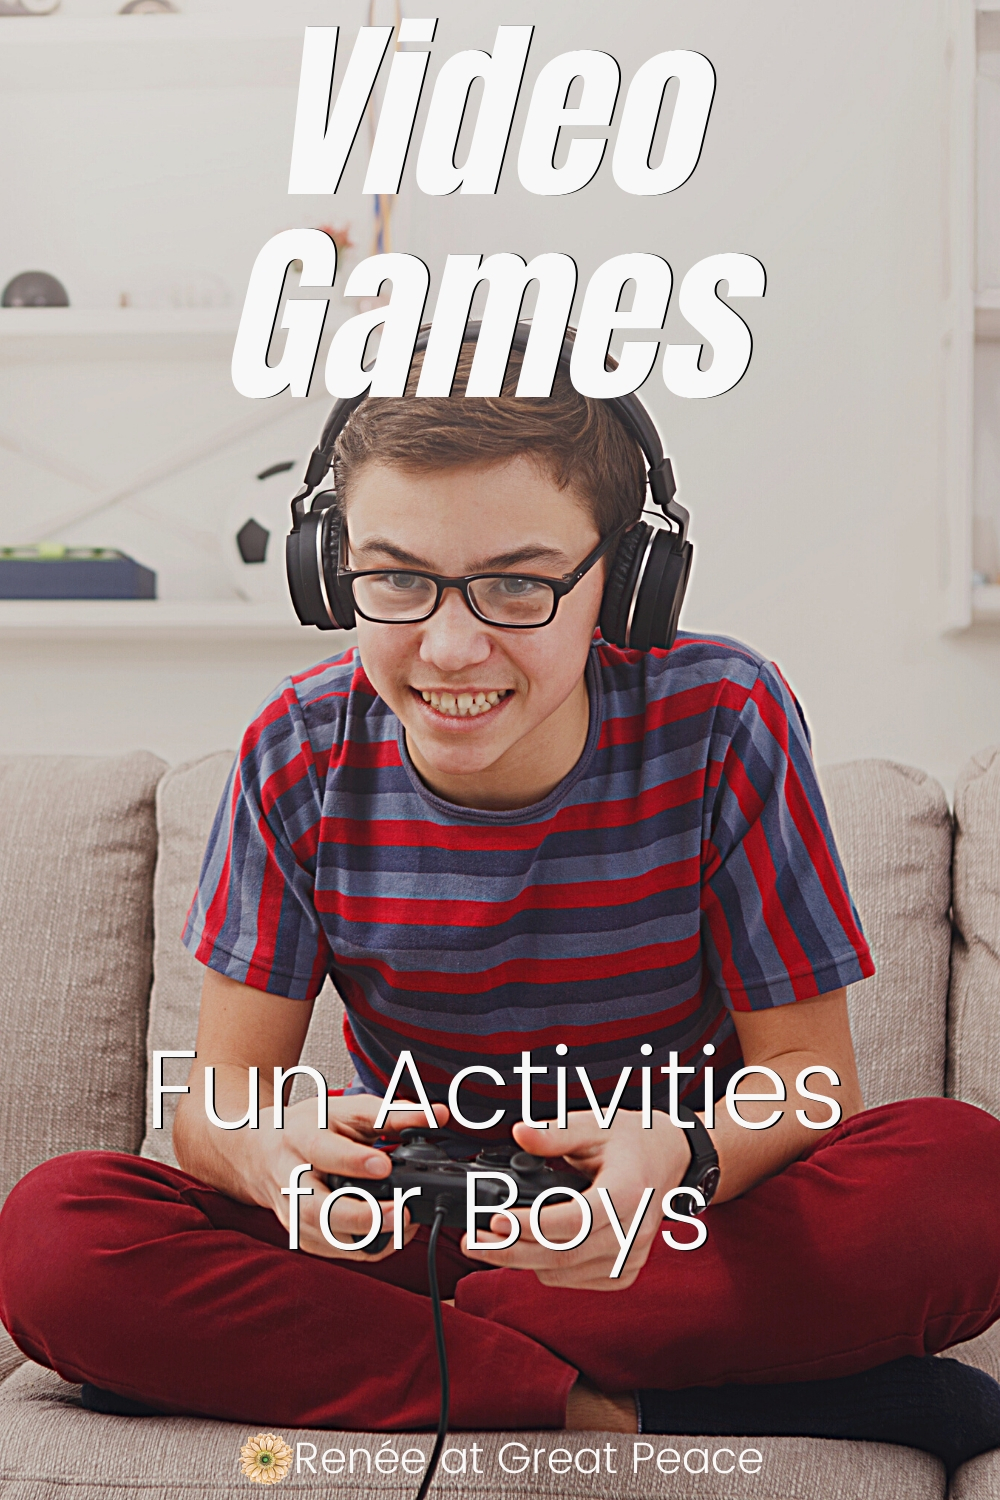 The Incredible Index for Boy Fun Activities | Renee at Great Peace #boys #boymoms #funactivities #resources #activities #summeractivities #ihsnet